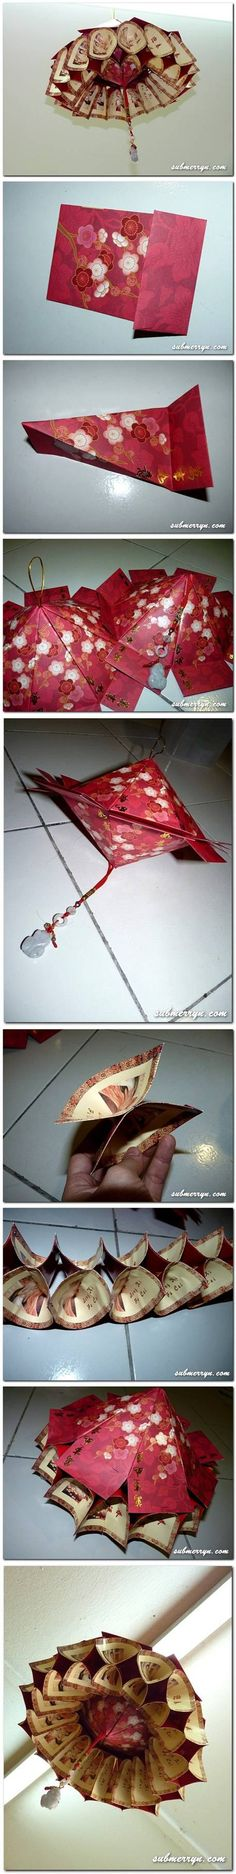 DIY Chinese Lantern DIY Chinese Lantern by diyforever Lanterns Decor, Paper Lanterns, New Year's Crafts, Fun Crafts, Origami Lights, Origami Lantern, Chinese New Year Decorations, Book Decorations, Decoupage